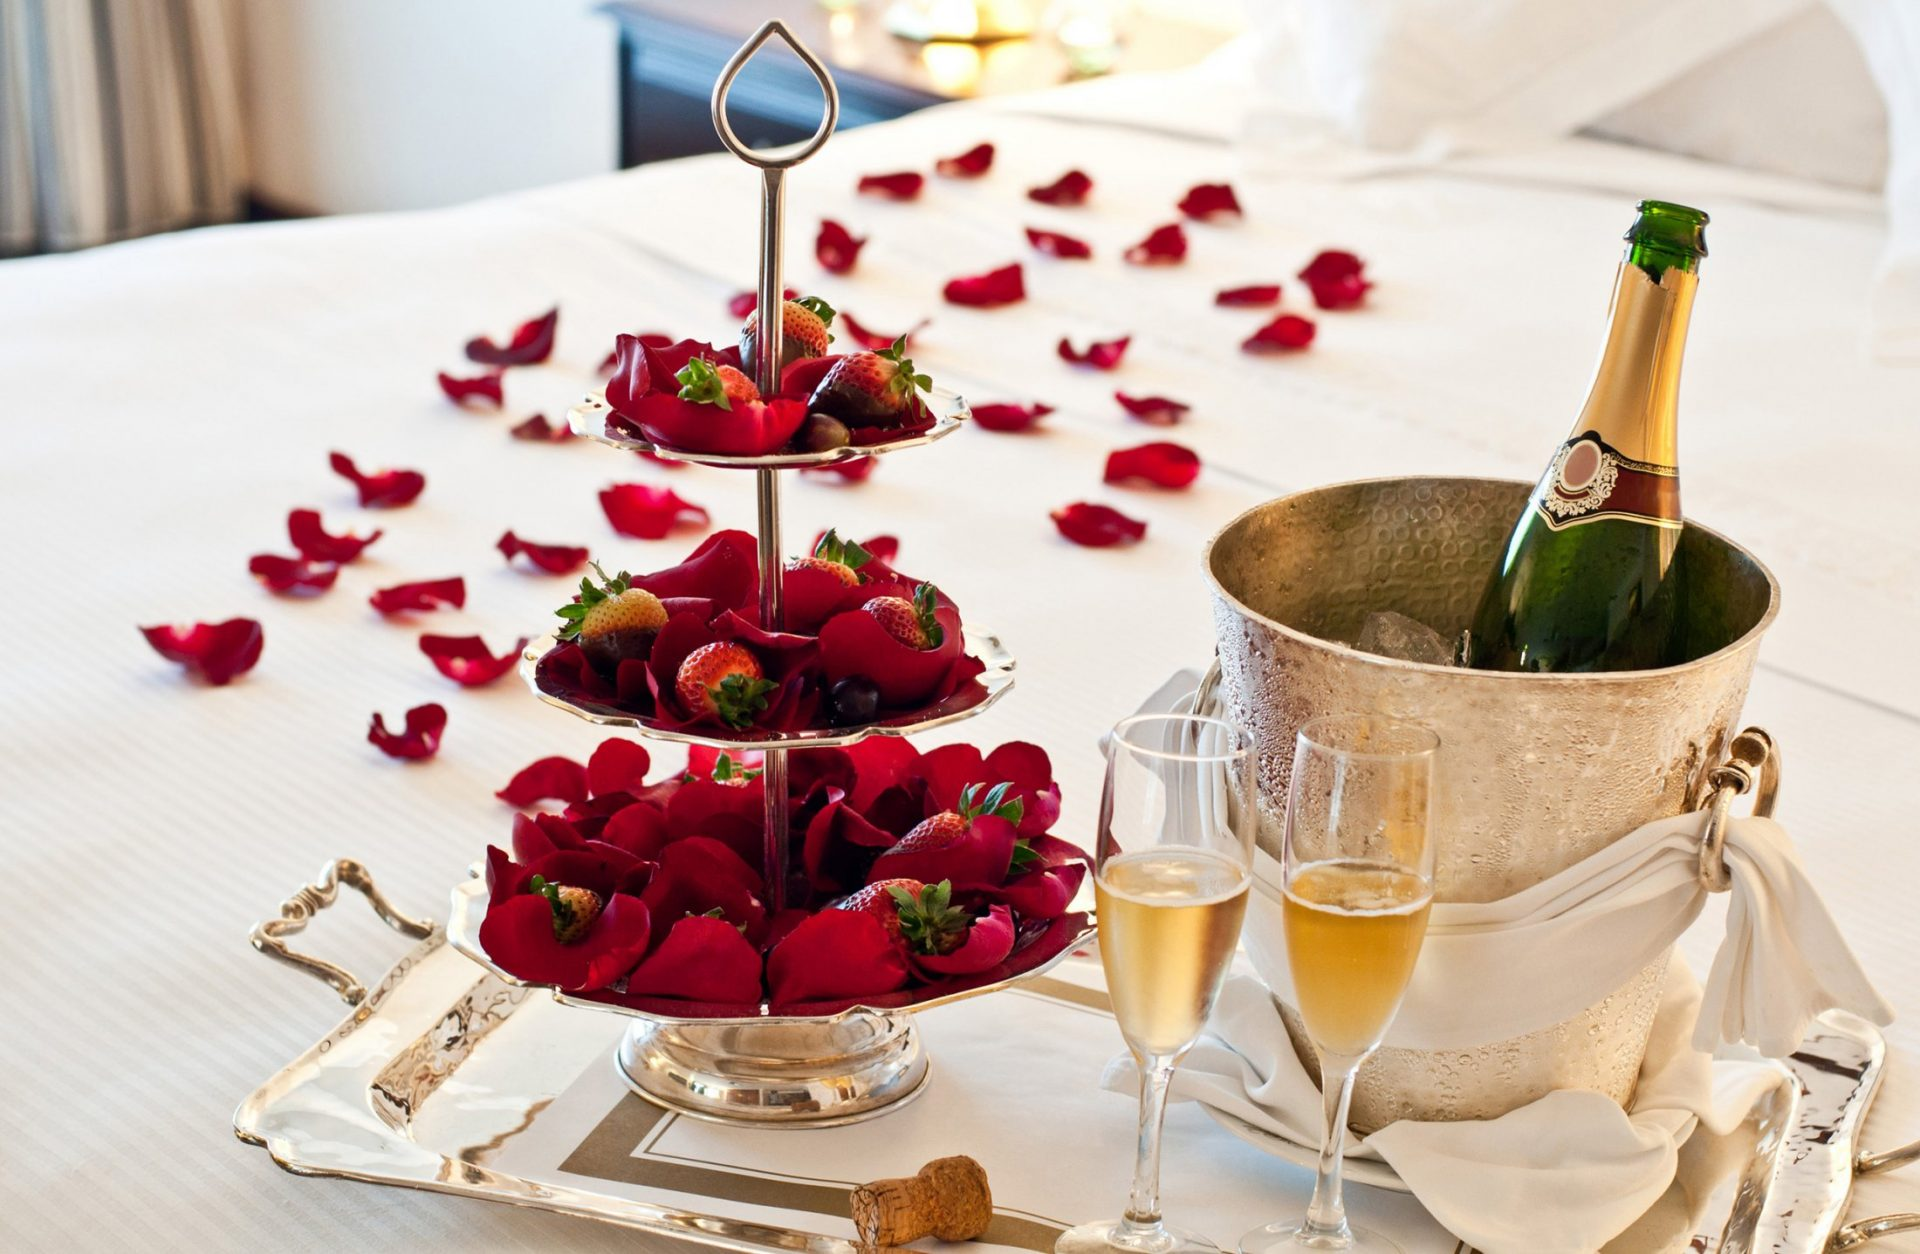 Romantic Rondezvous with chocolate strawberries delivered to villa